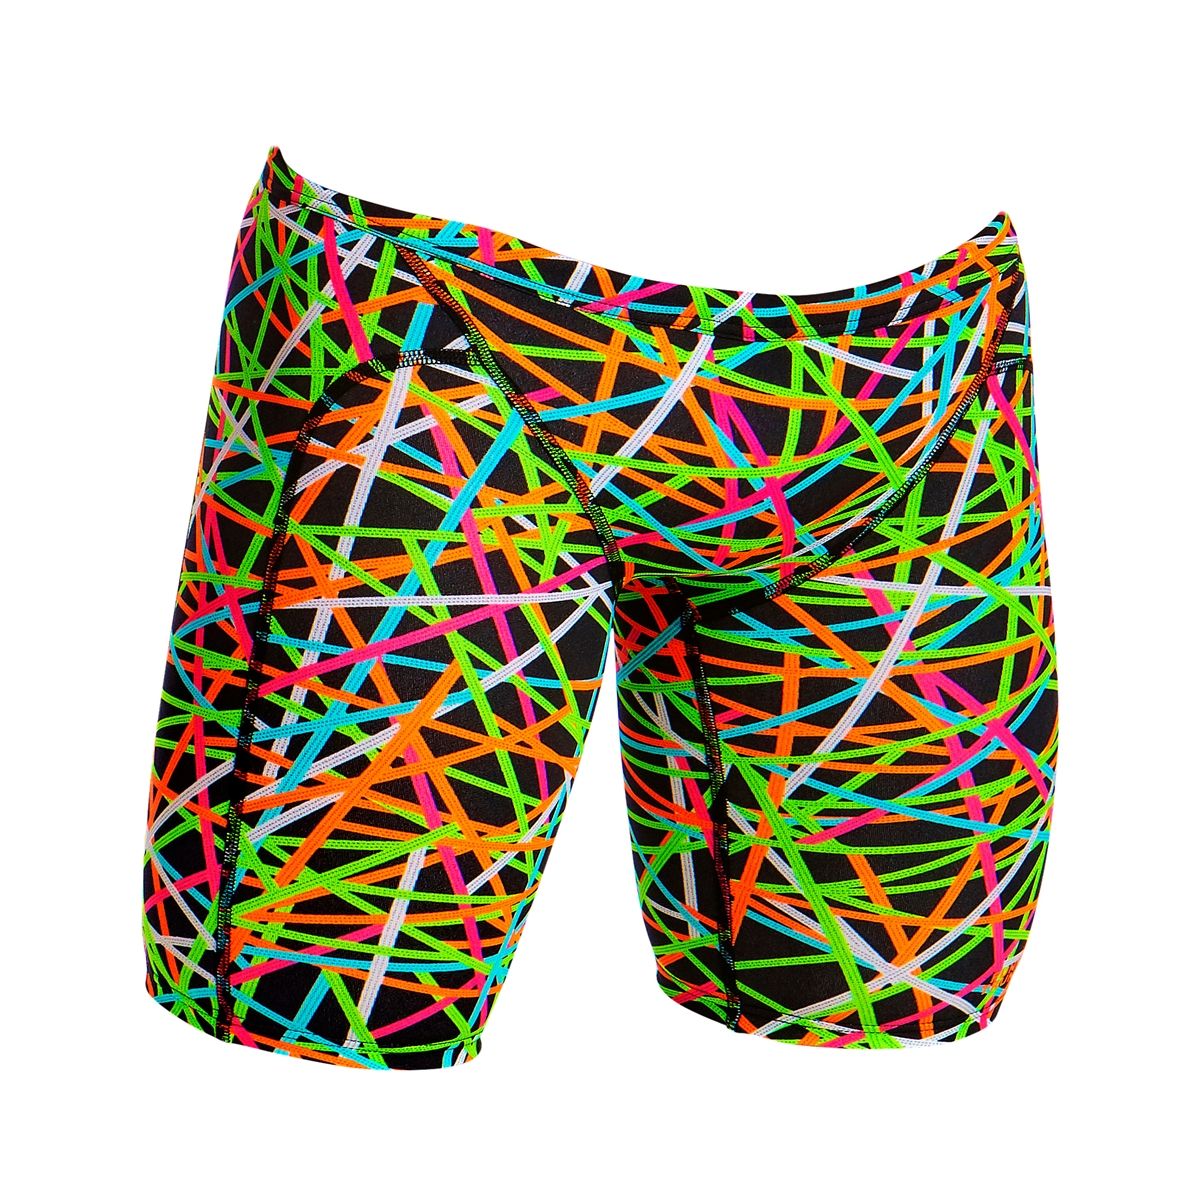 2bdf7a9fe7a05 Funky Trunks Training Jammer Strapped In - Mens Rapid Swimshop